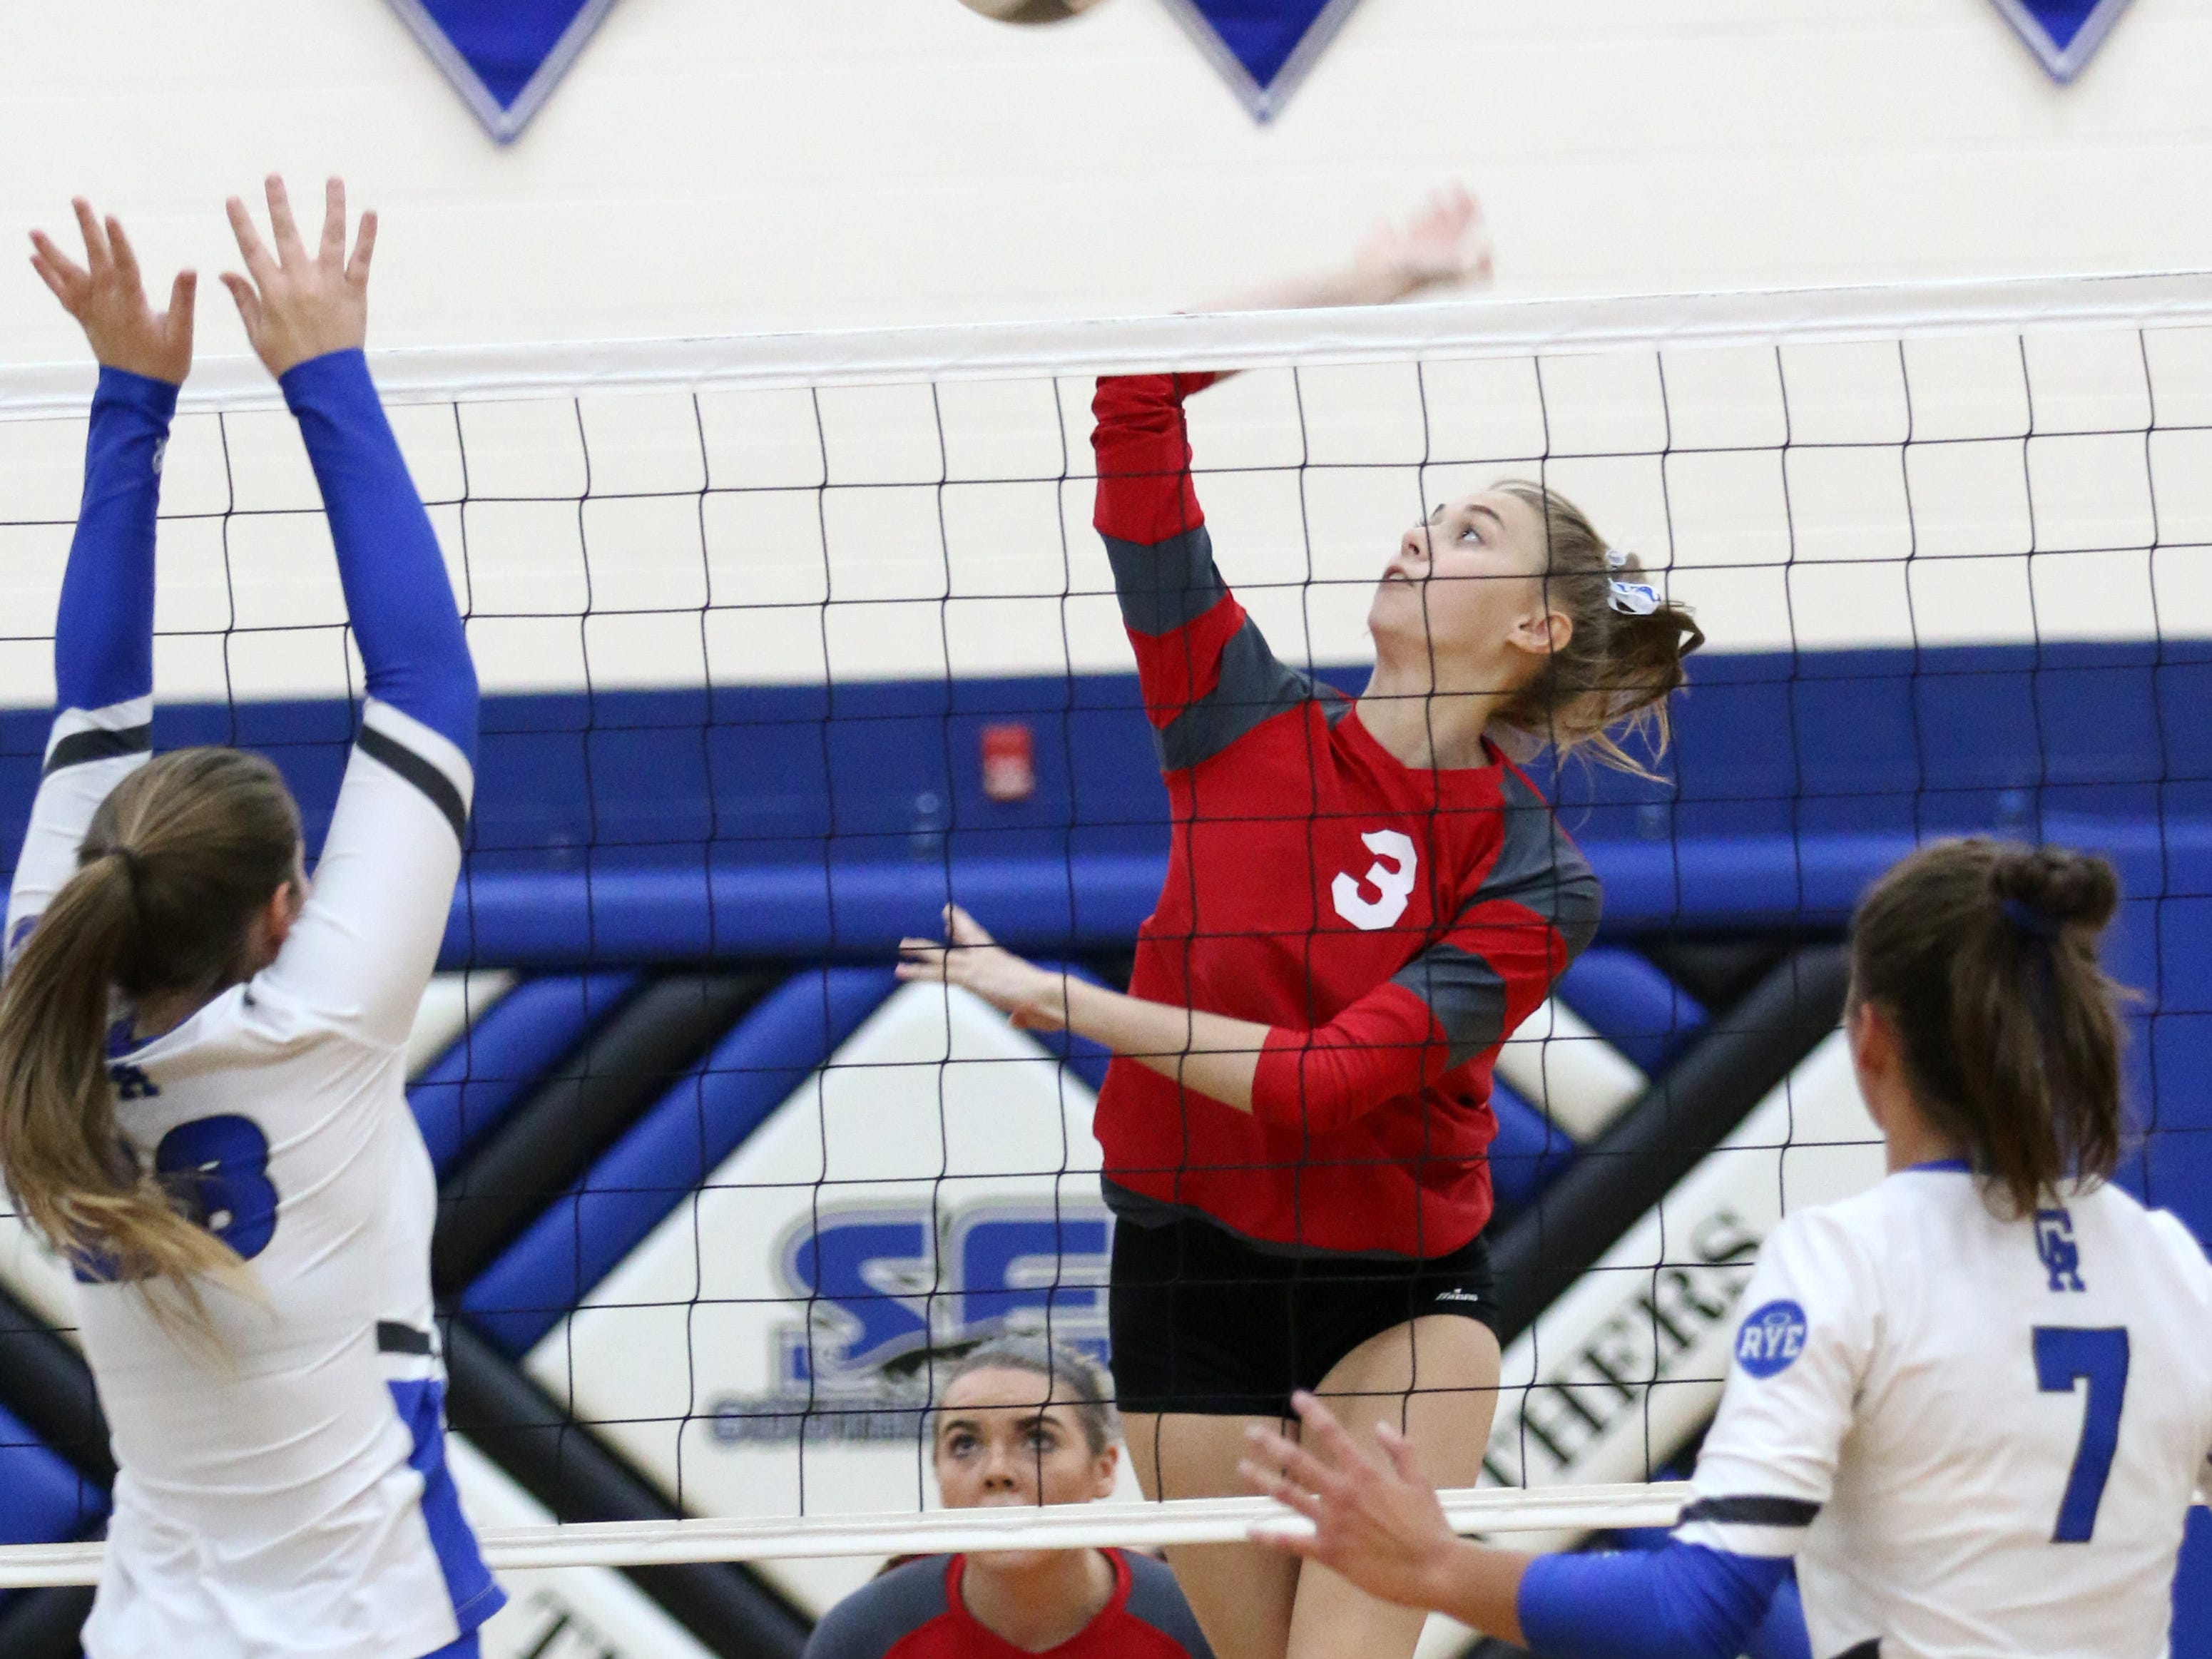 Sheridan defeated Gallia Academy Wednesday night 3-2 at Southeastern High School in Chillicothe, Ohio, advancing them to the district finals in Division II.